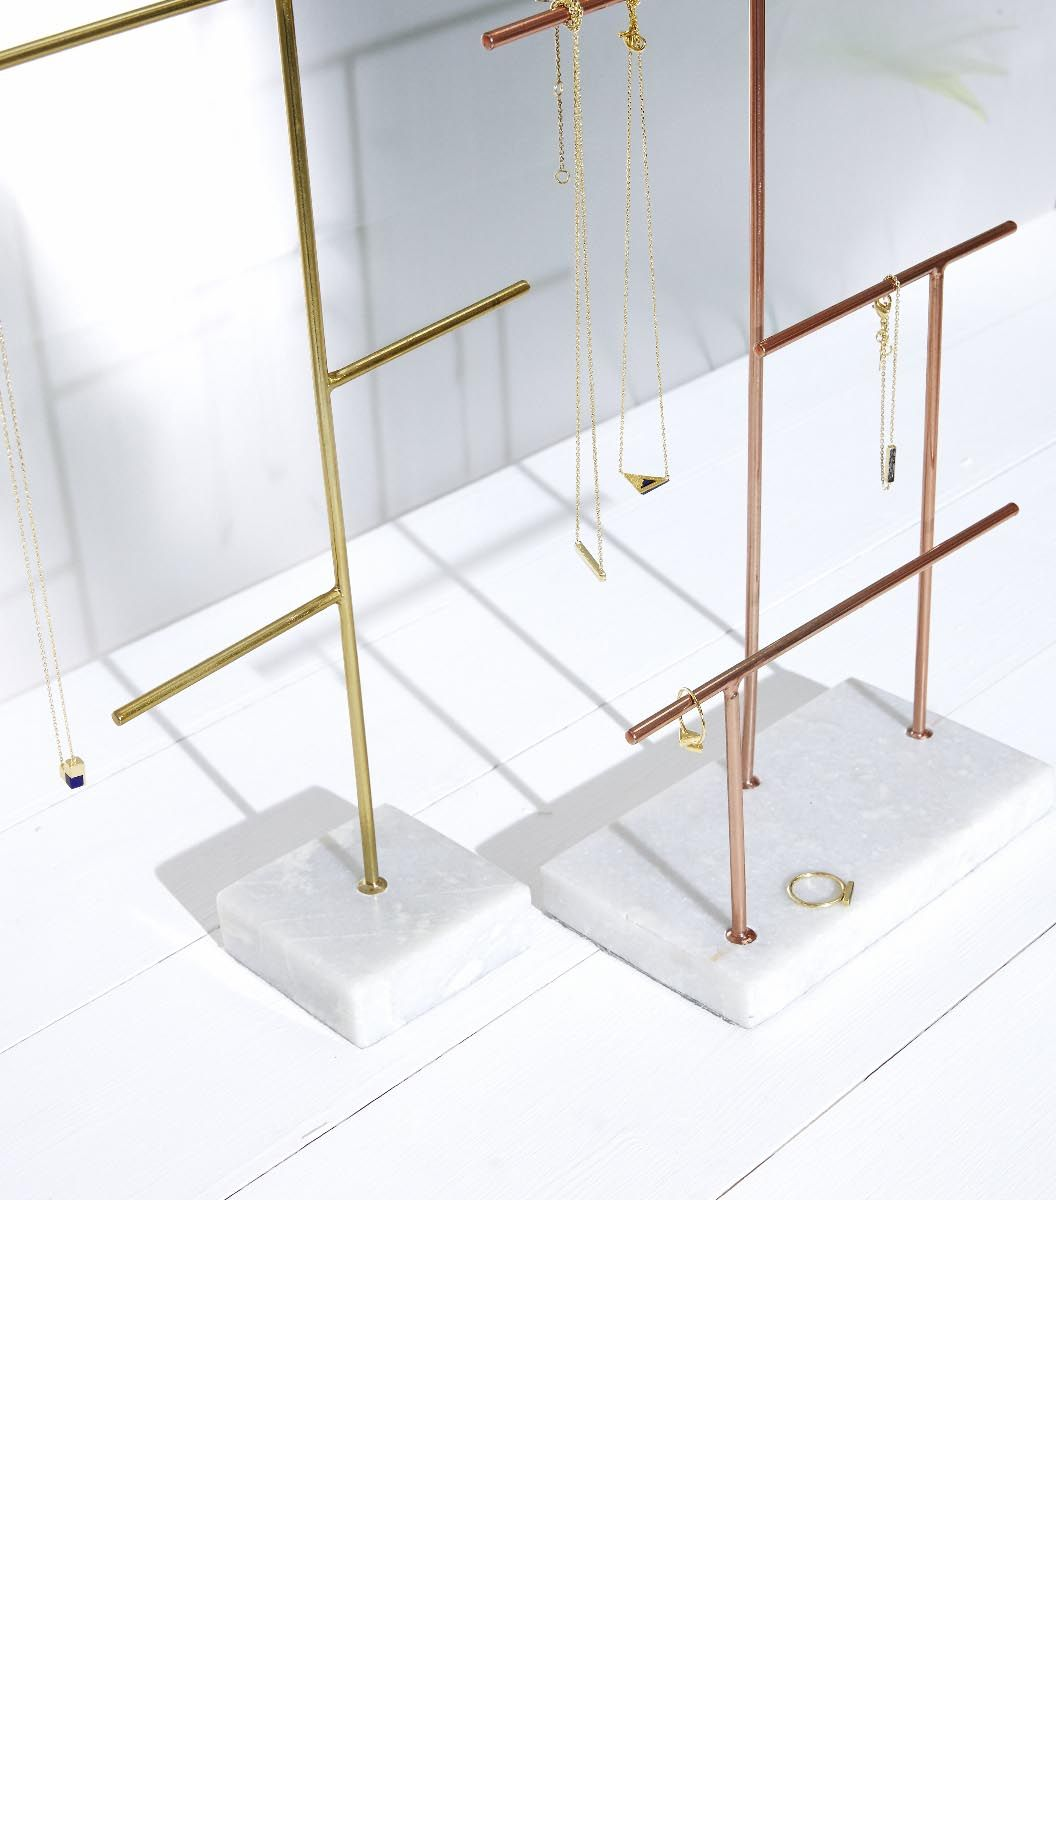 214dabf9f Combining a sleek and weighty marble base with structural metallic lines,  our minimalist Large Copper & Marble Jewellery Stand allows your jewellery  to make ...